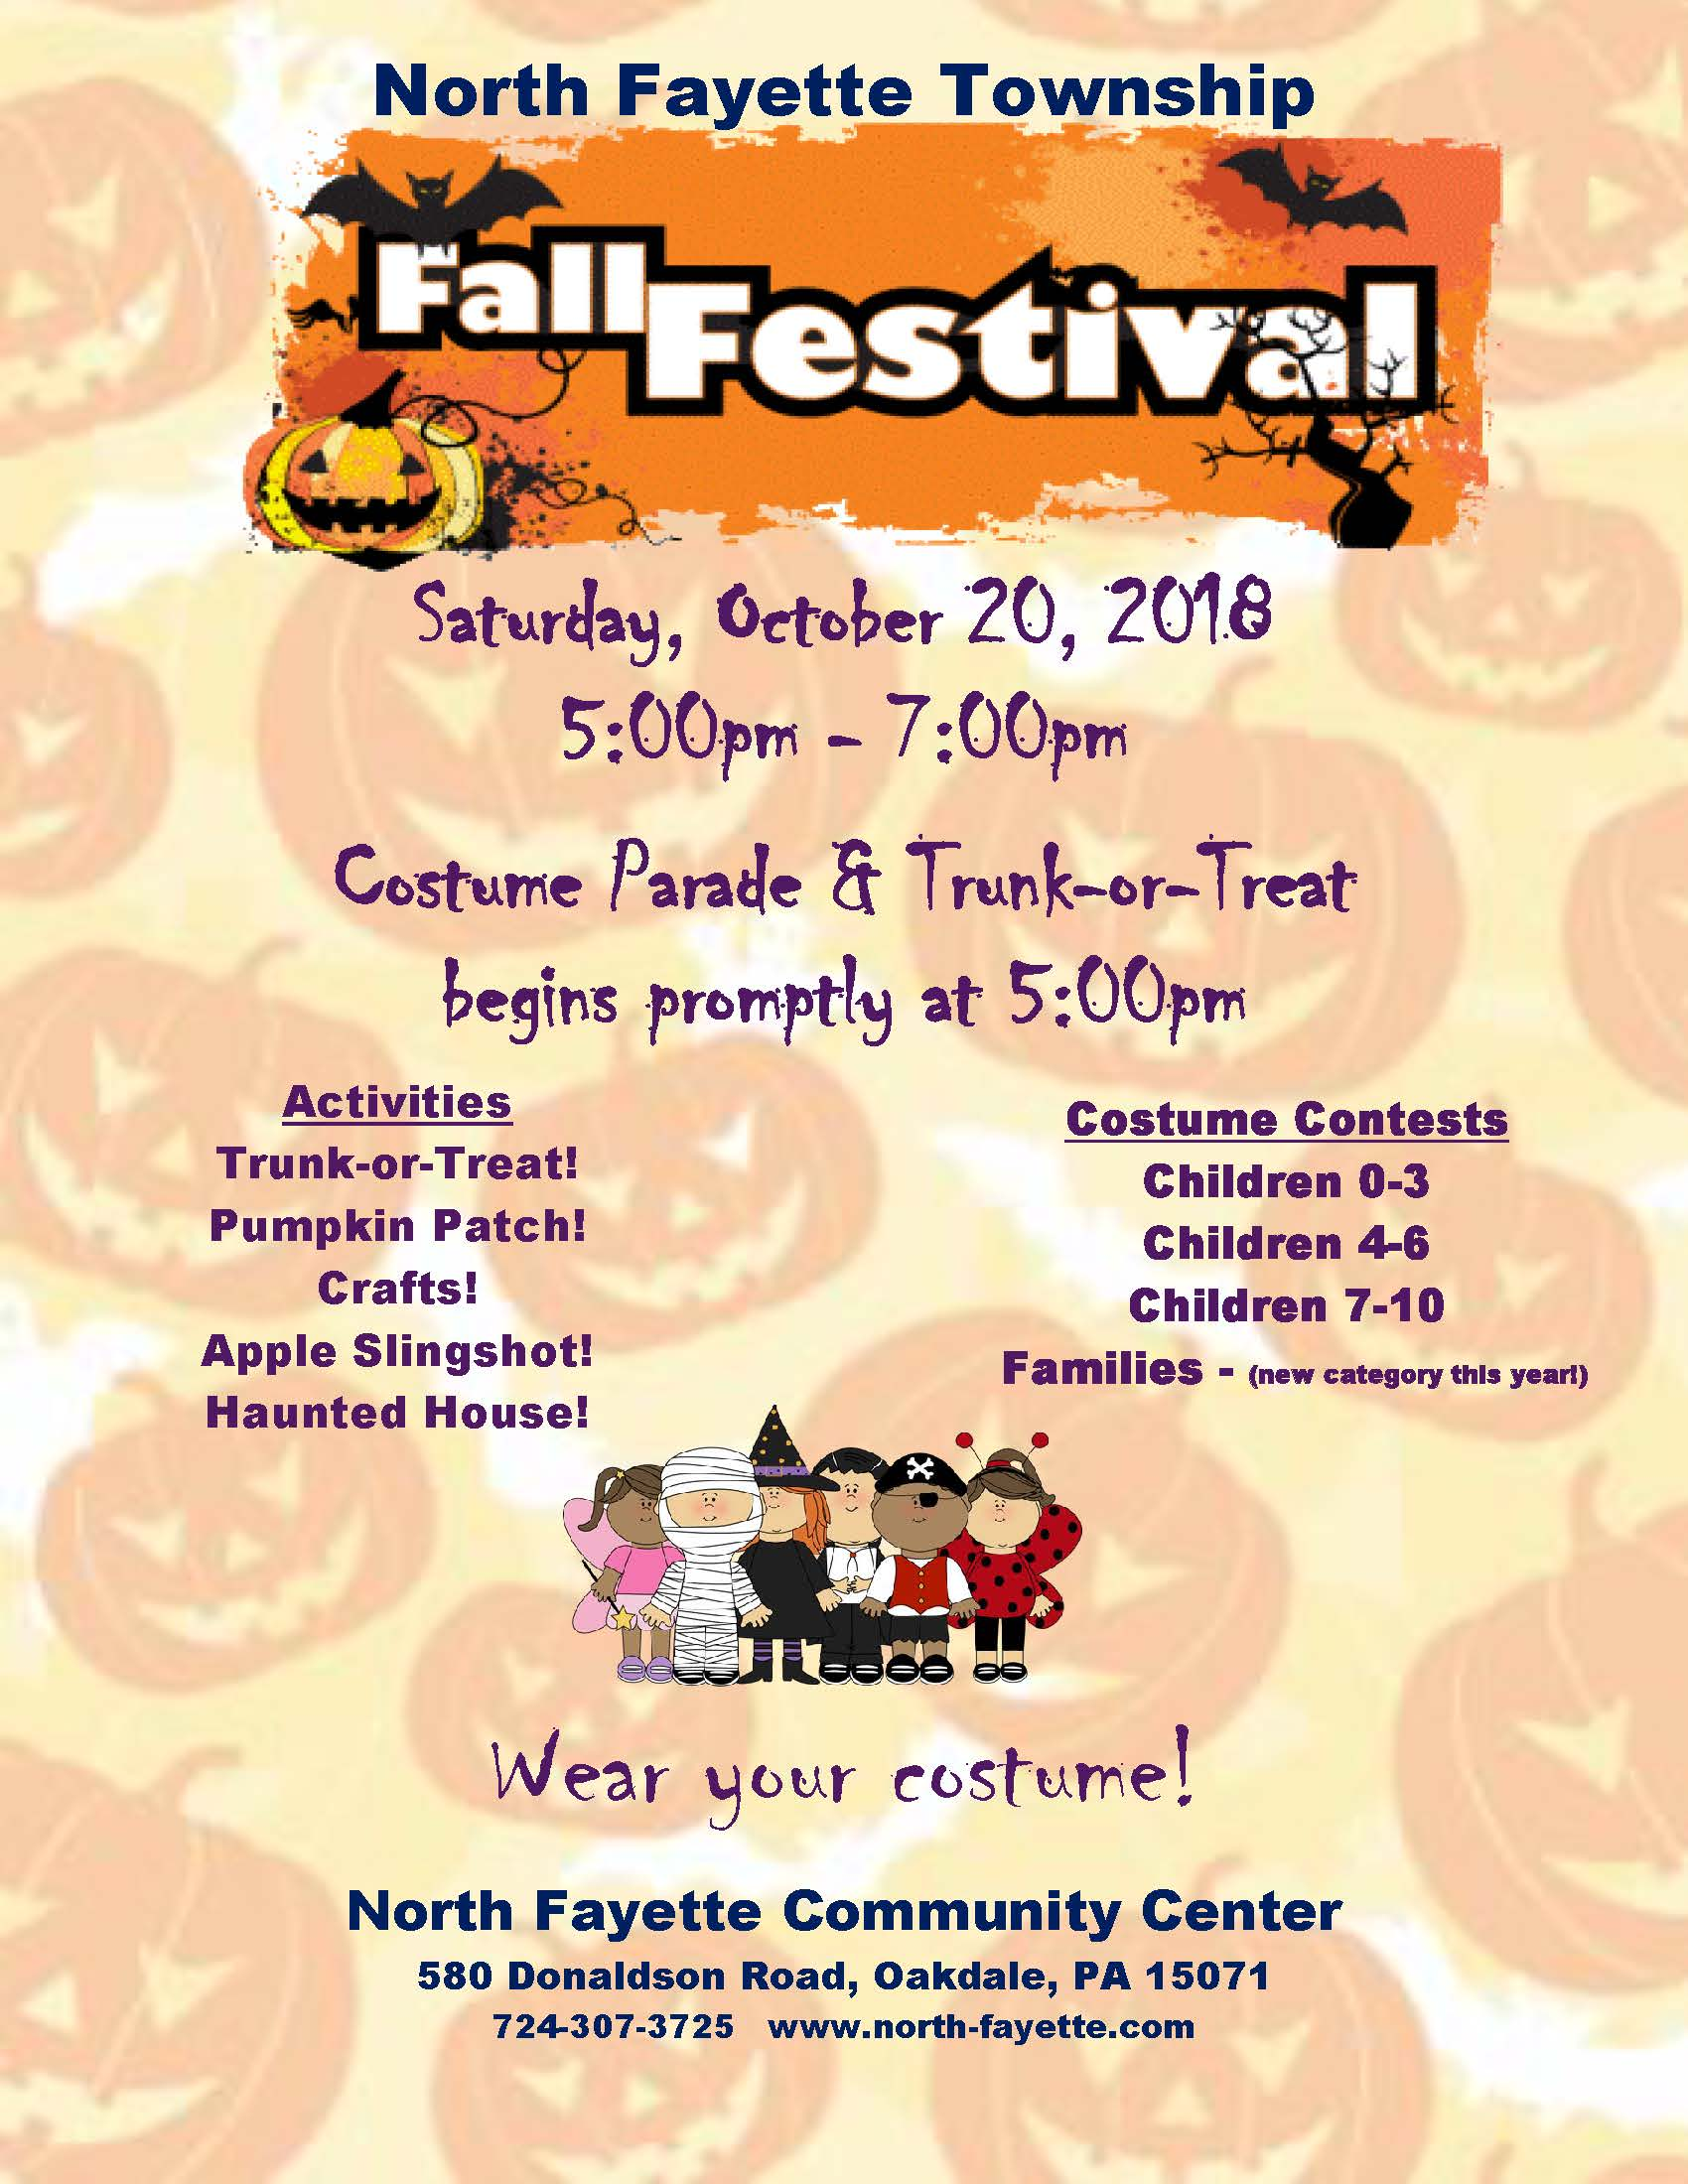 Fall Festival Flyer New 2018_201809201124567714